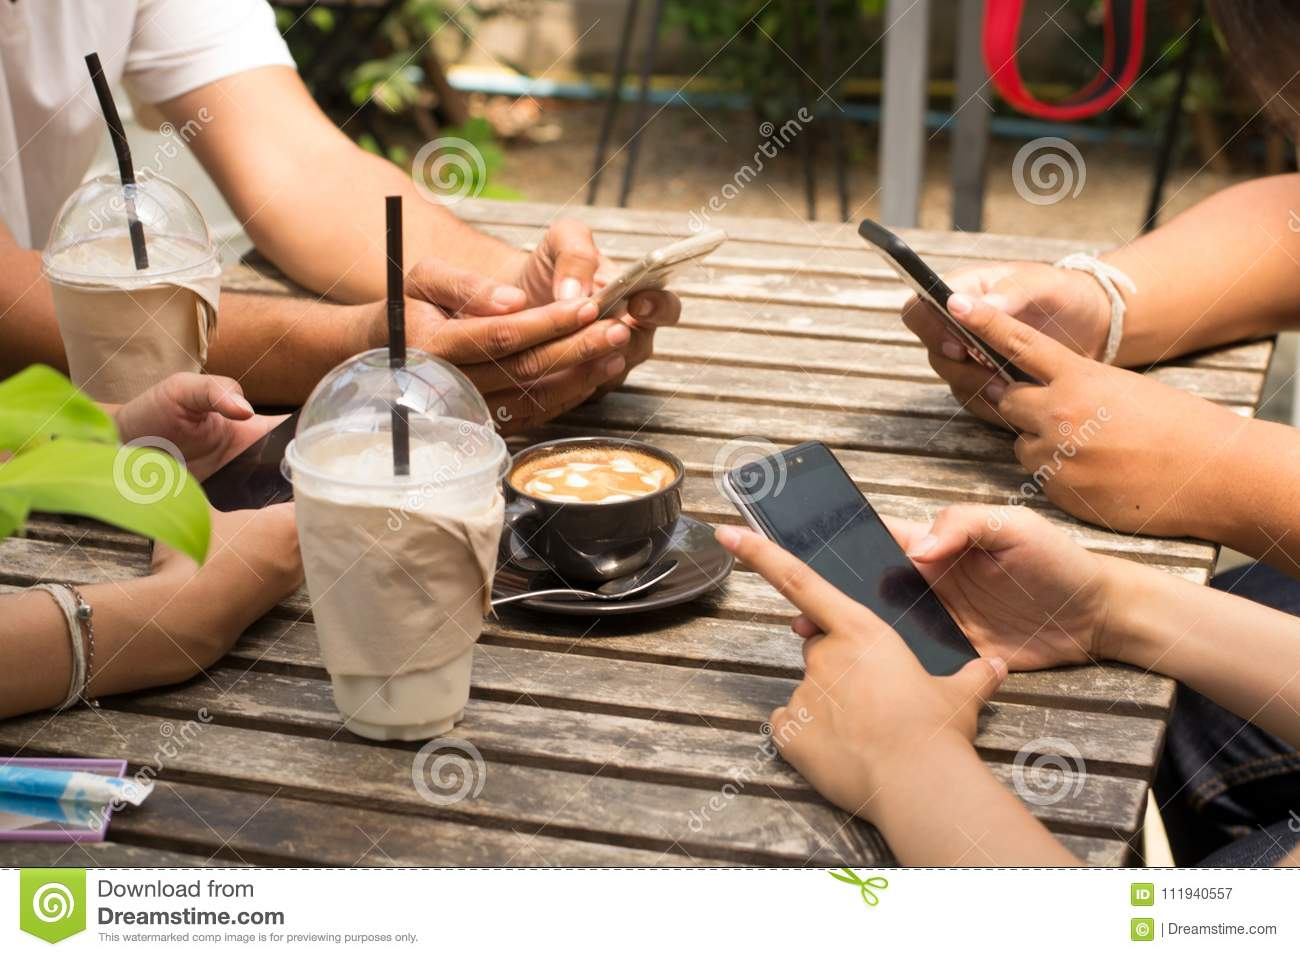 People are sitting on the phone and drinking coffee on a wooden table in a restaurant.